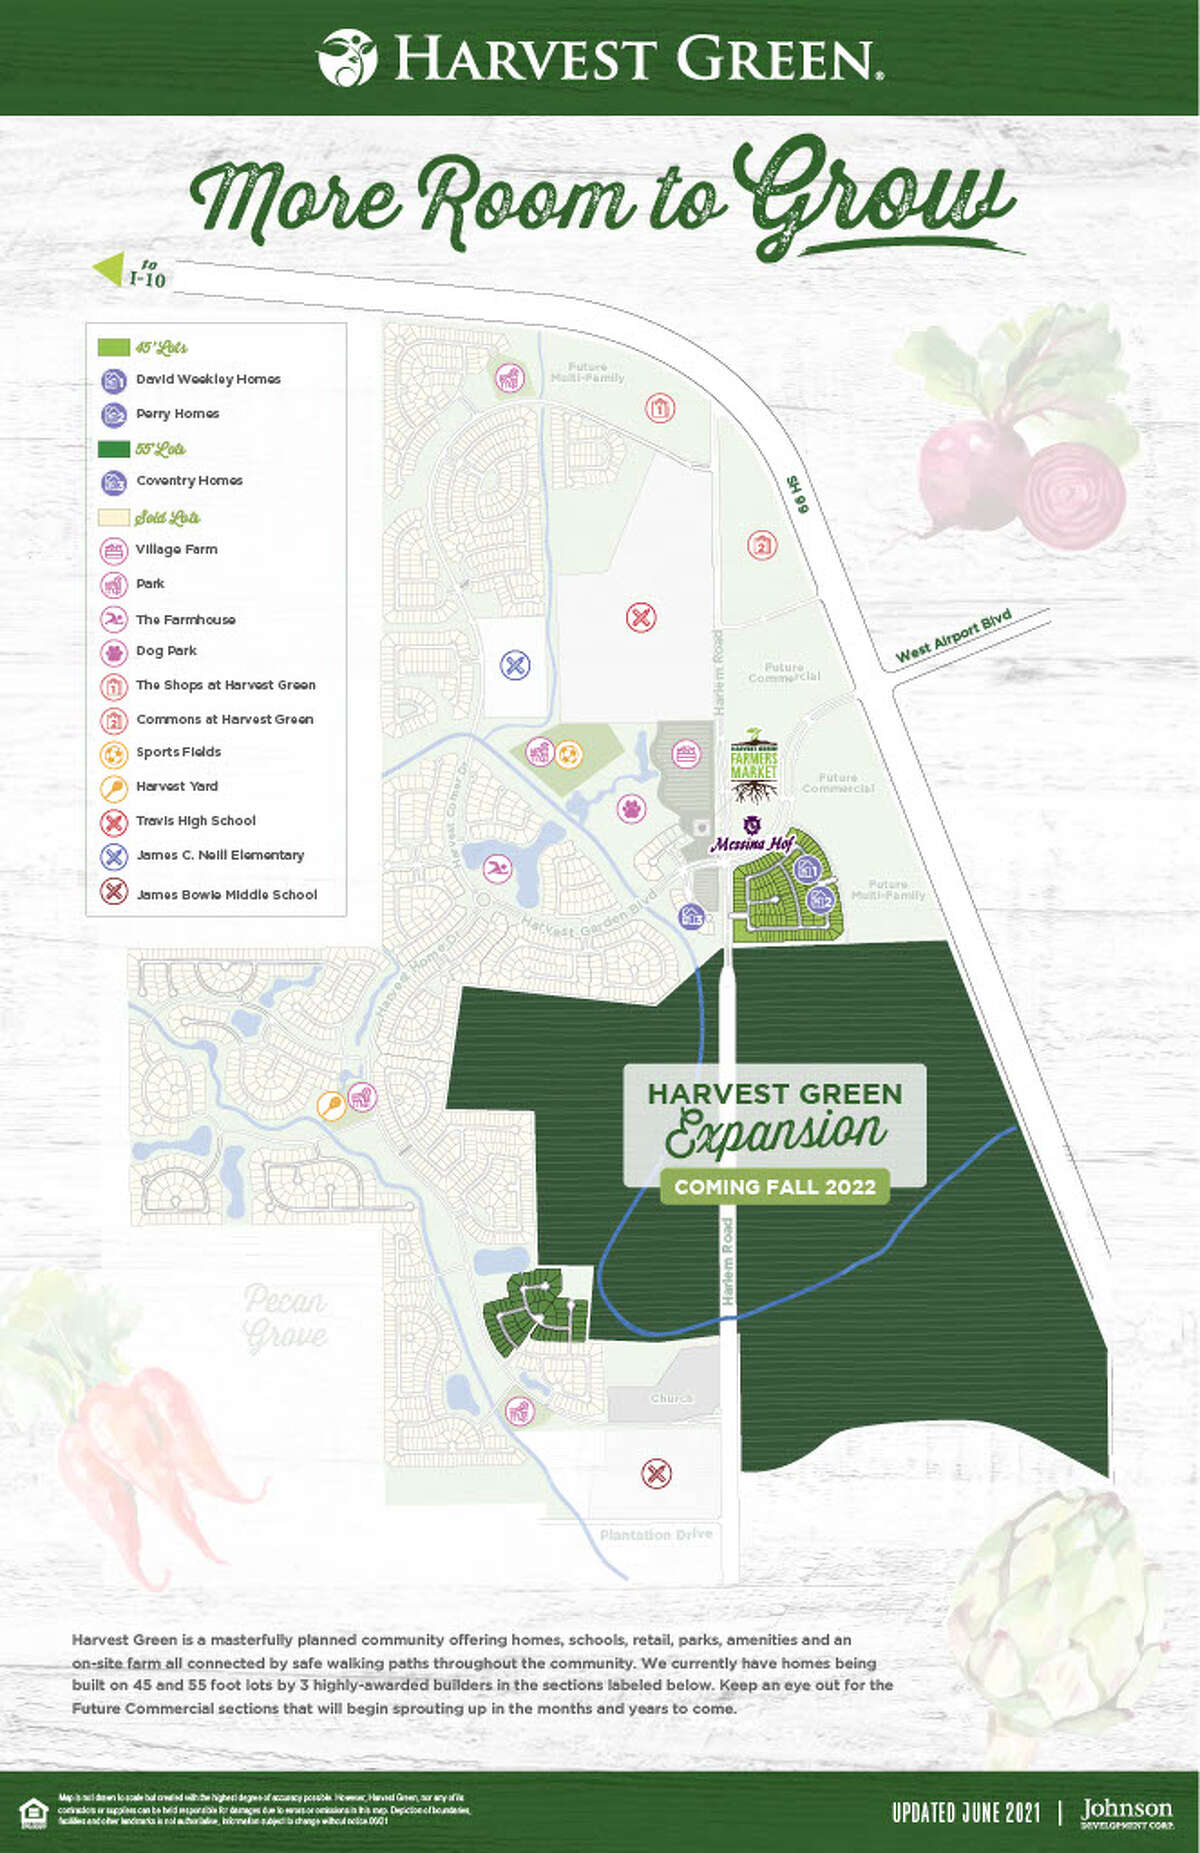 Johnson Development has closed on 630 acres adjacent to Harvest Green that will add approximately 1,400 homes to the community.